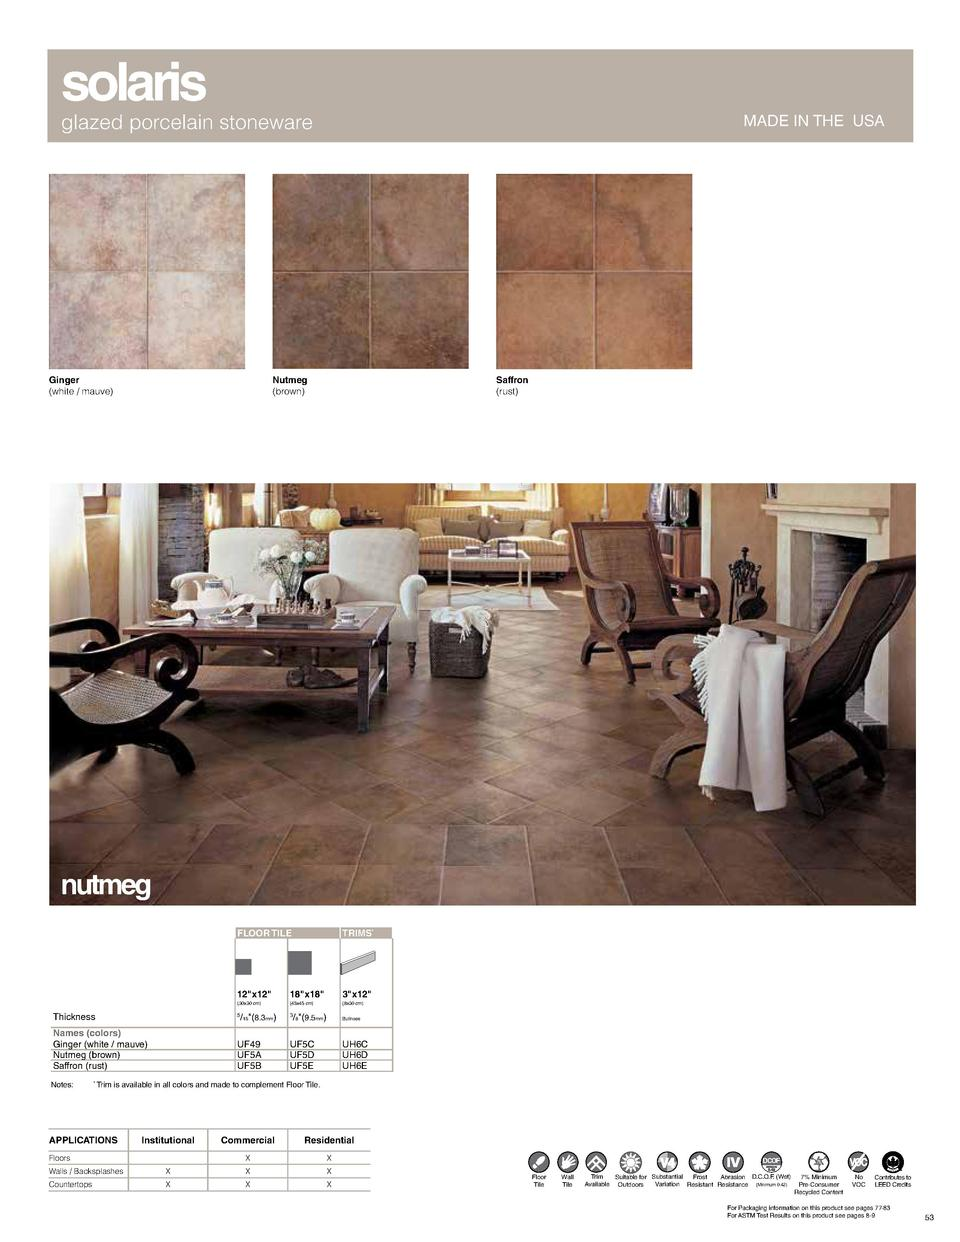 solaris  glazed porcelain stoneware  Ginger  white   mauve   MADE IN THE USA  Nutmeg  brown   Saffron  rust   nutmeg FLOOR...